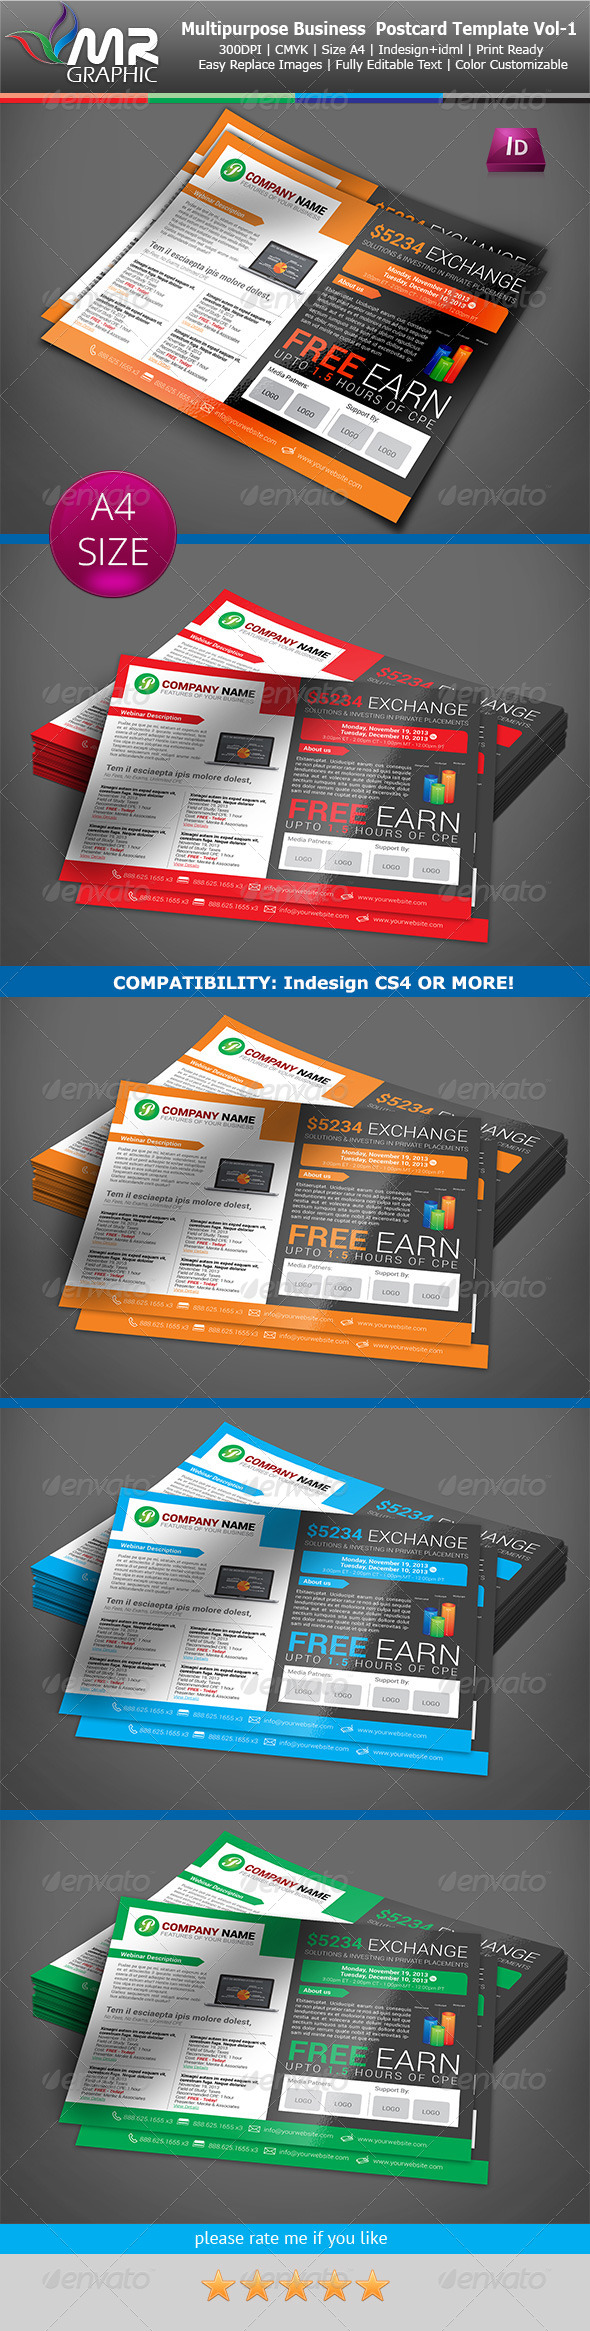 Multipurpose Business Flyer Template Vol-06 - Cards & Invites Print Templates